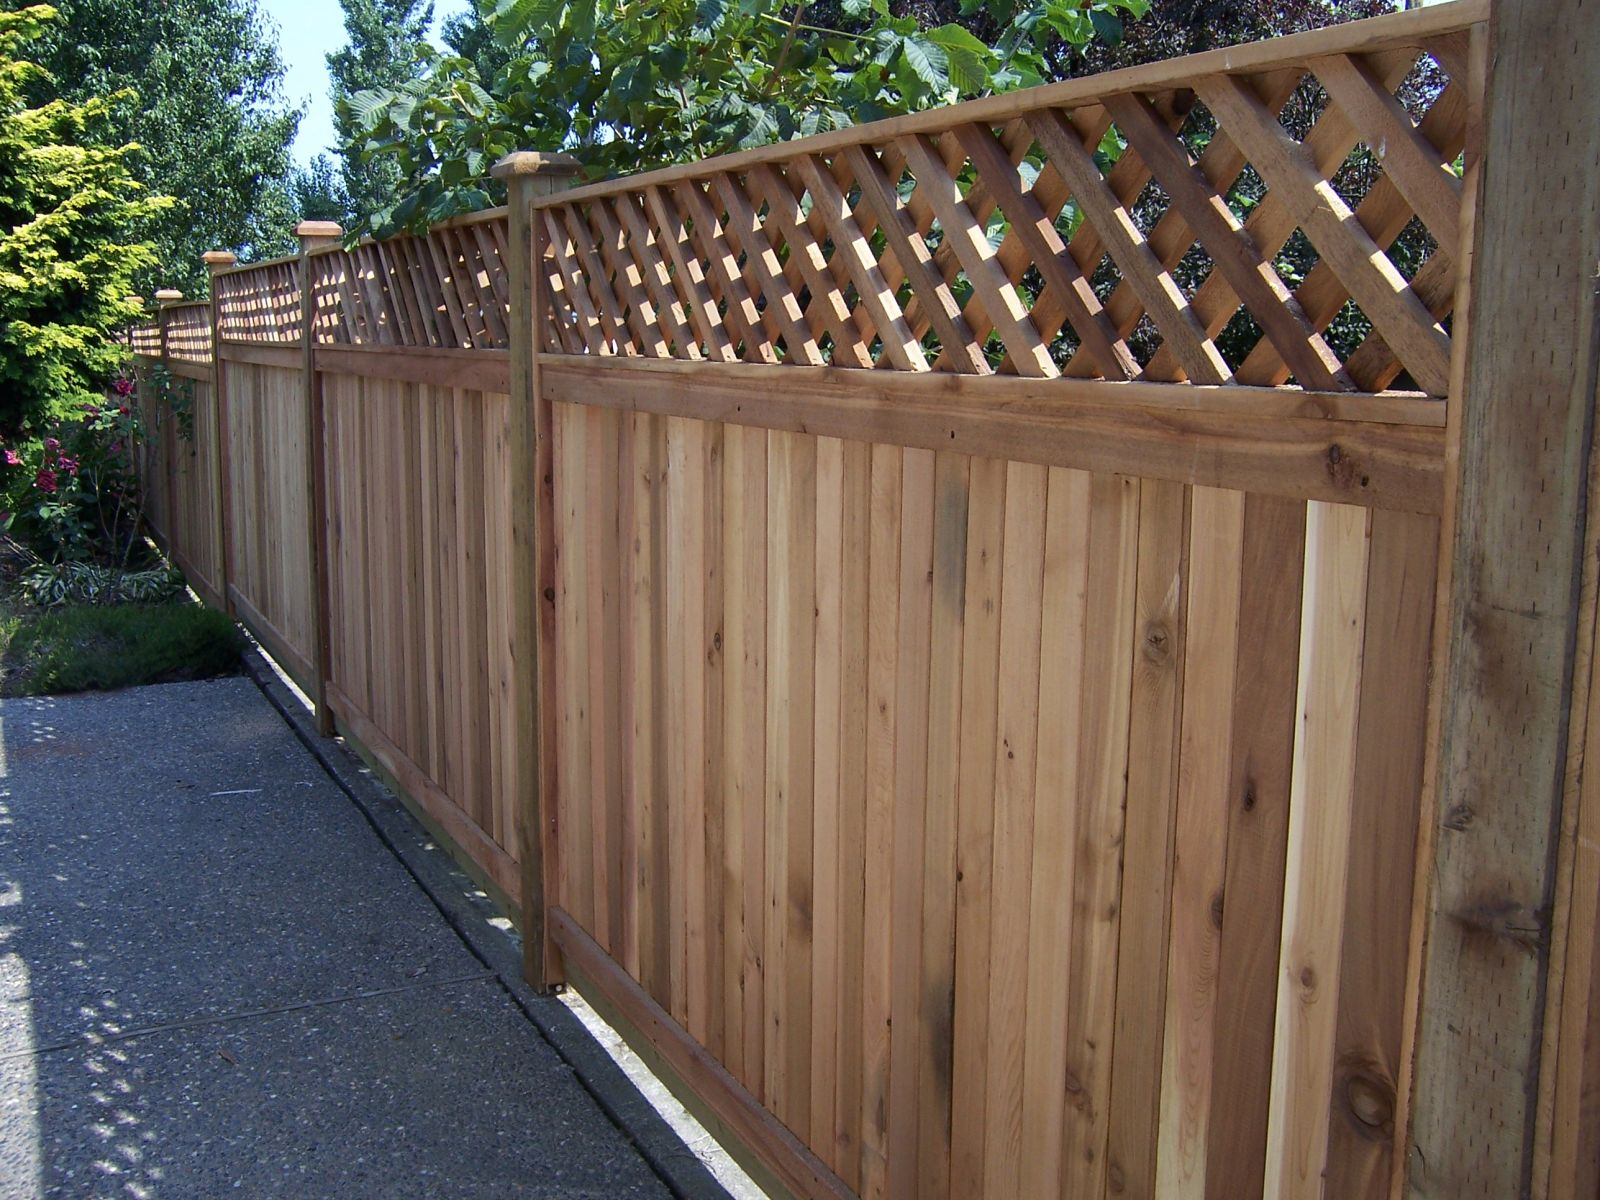 Staining vs Painting Wooden Fences